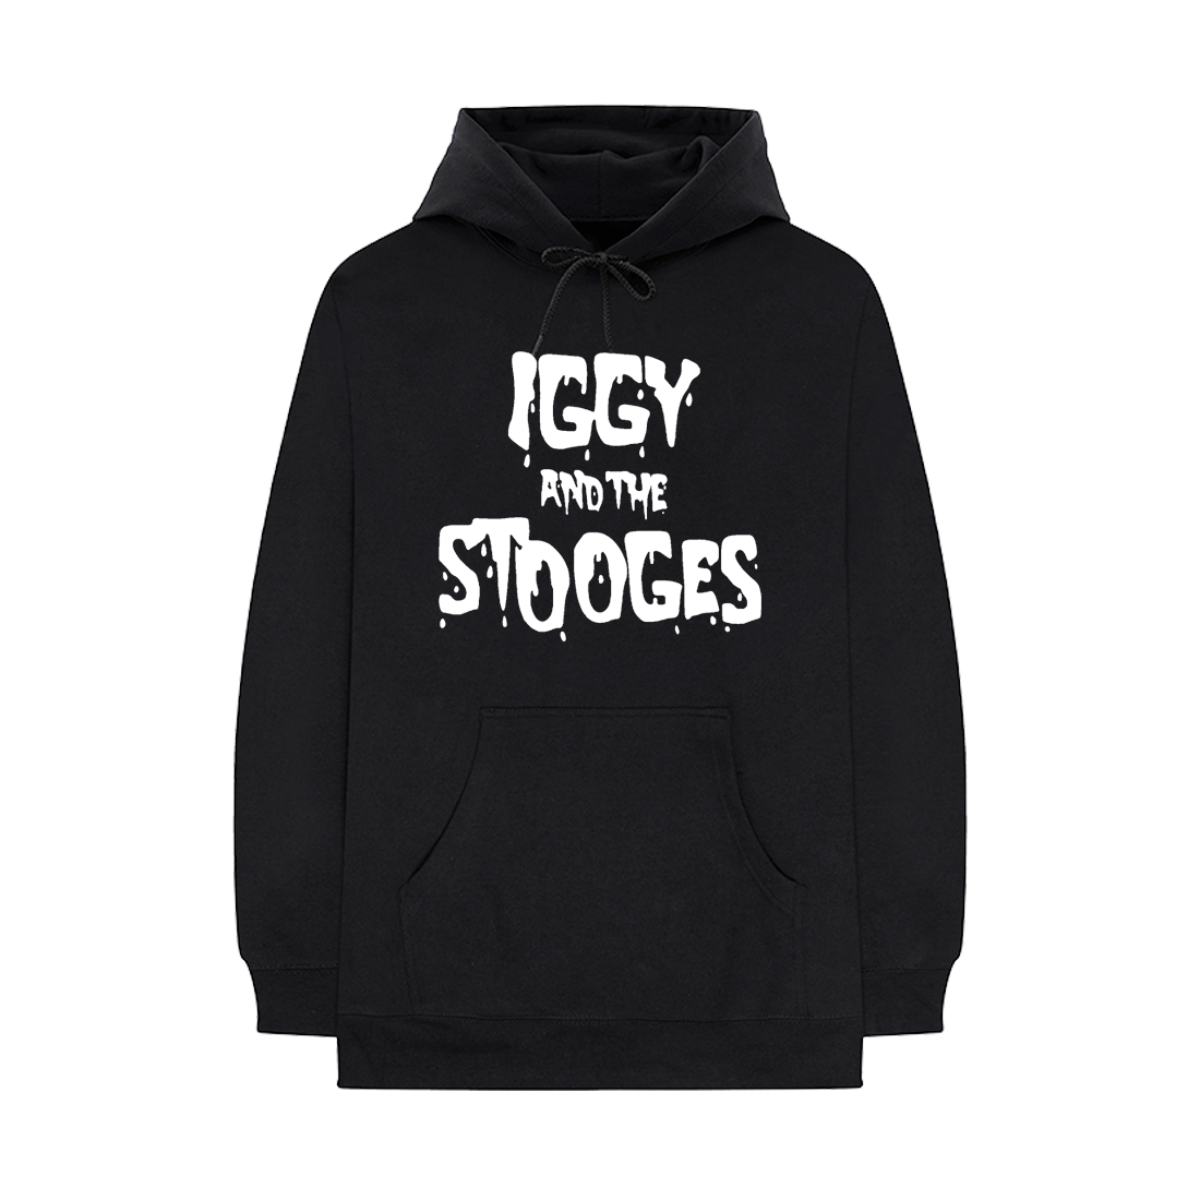 Iggy and the Stooges® Hoodie